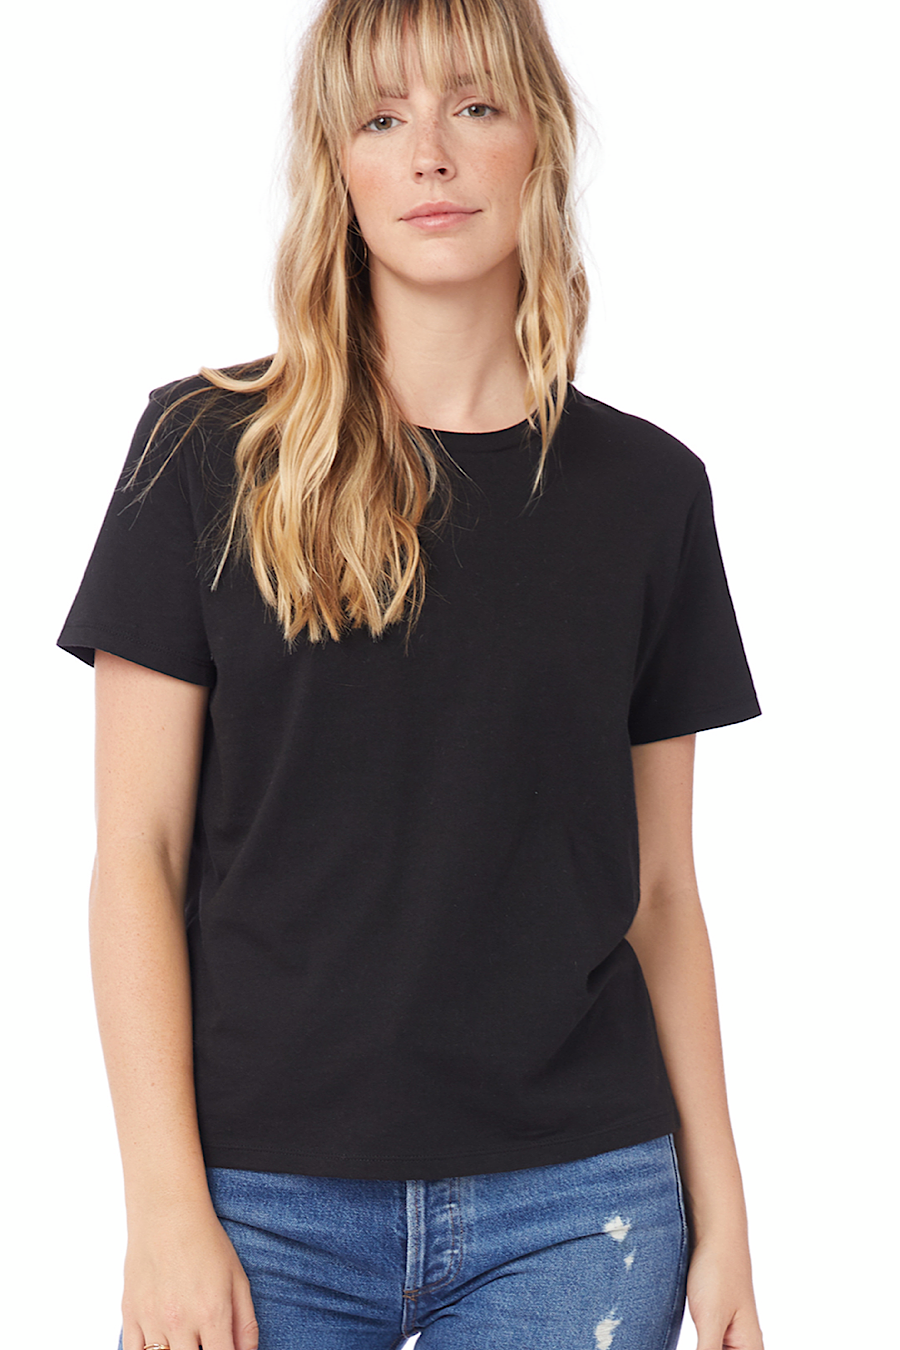 Her Go-To T-Shirt in Black